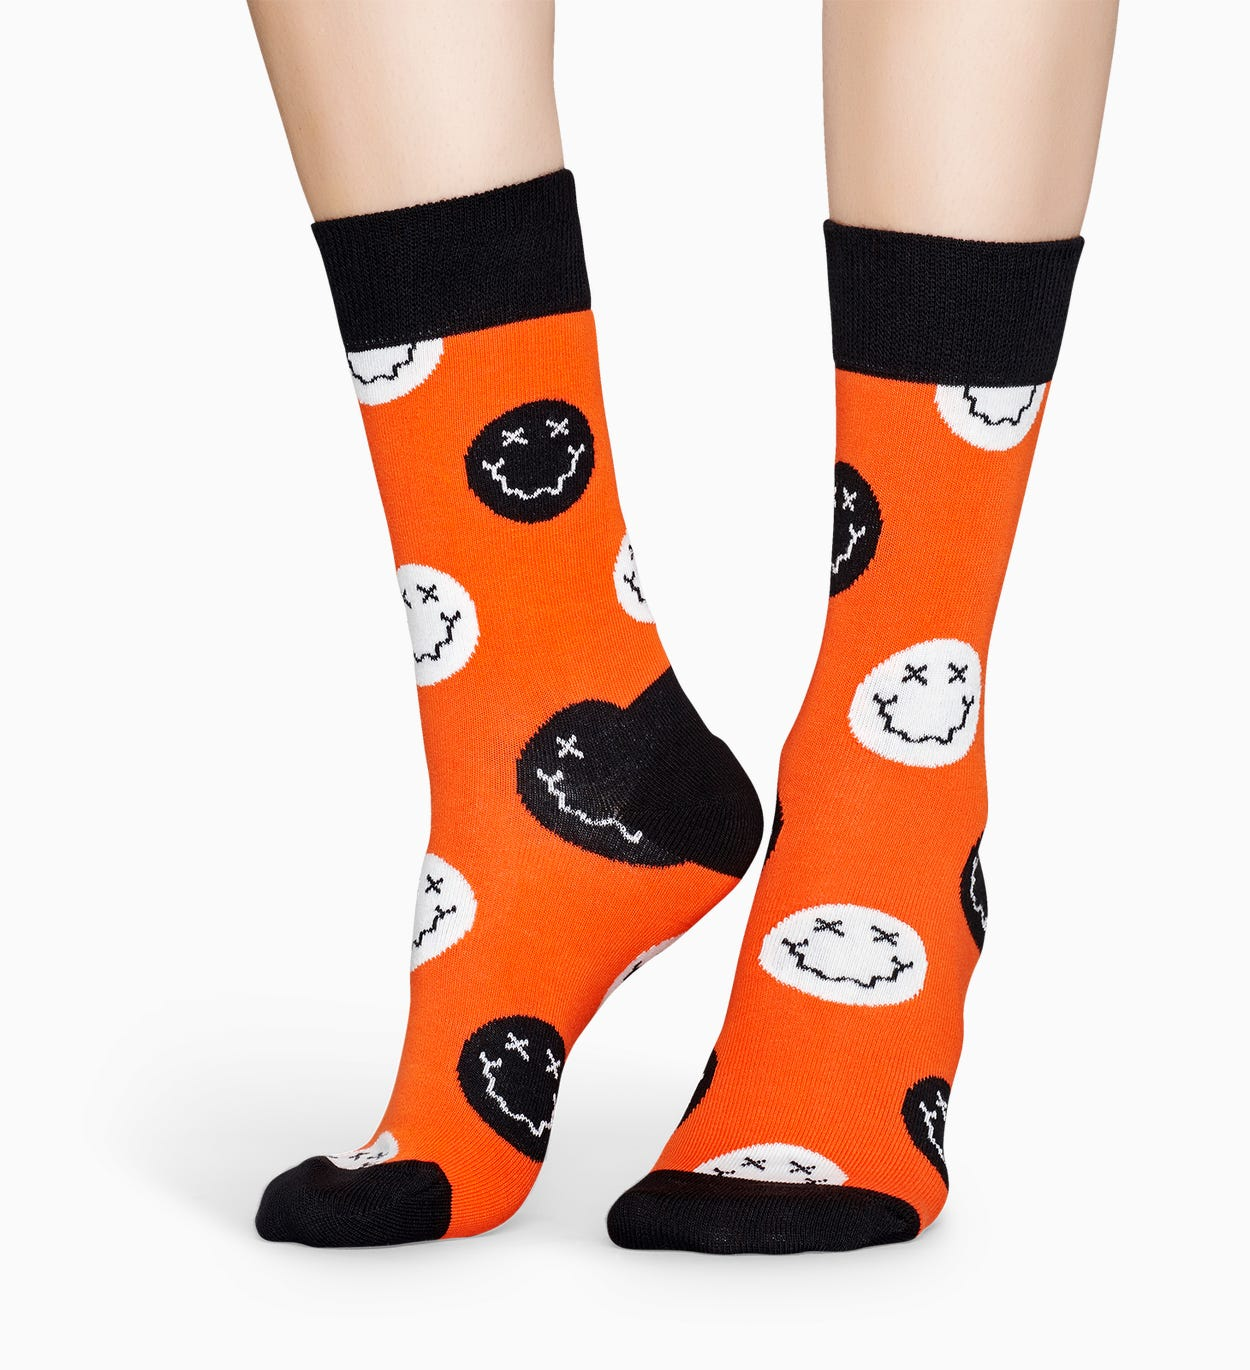 Gemusterte orange Socken: Halloween Smile | Happy Socks